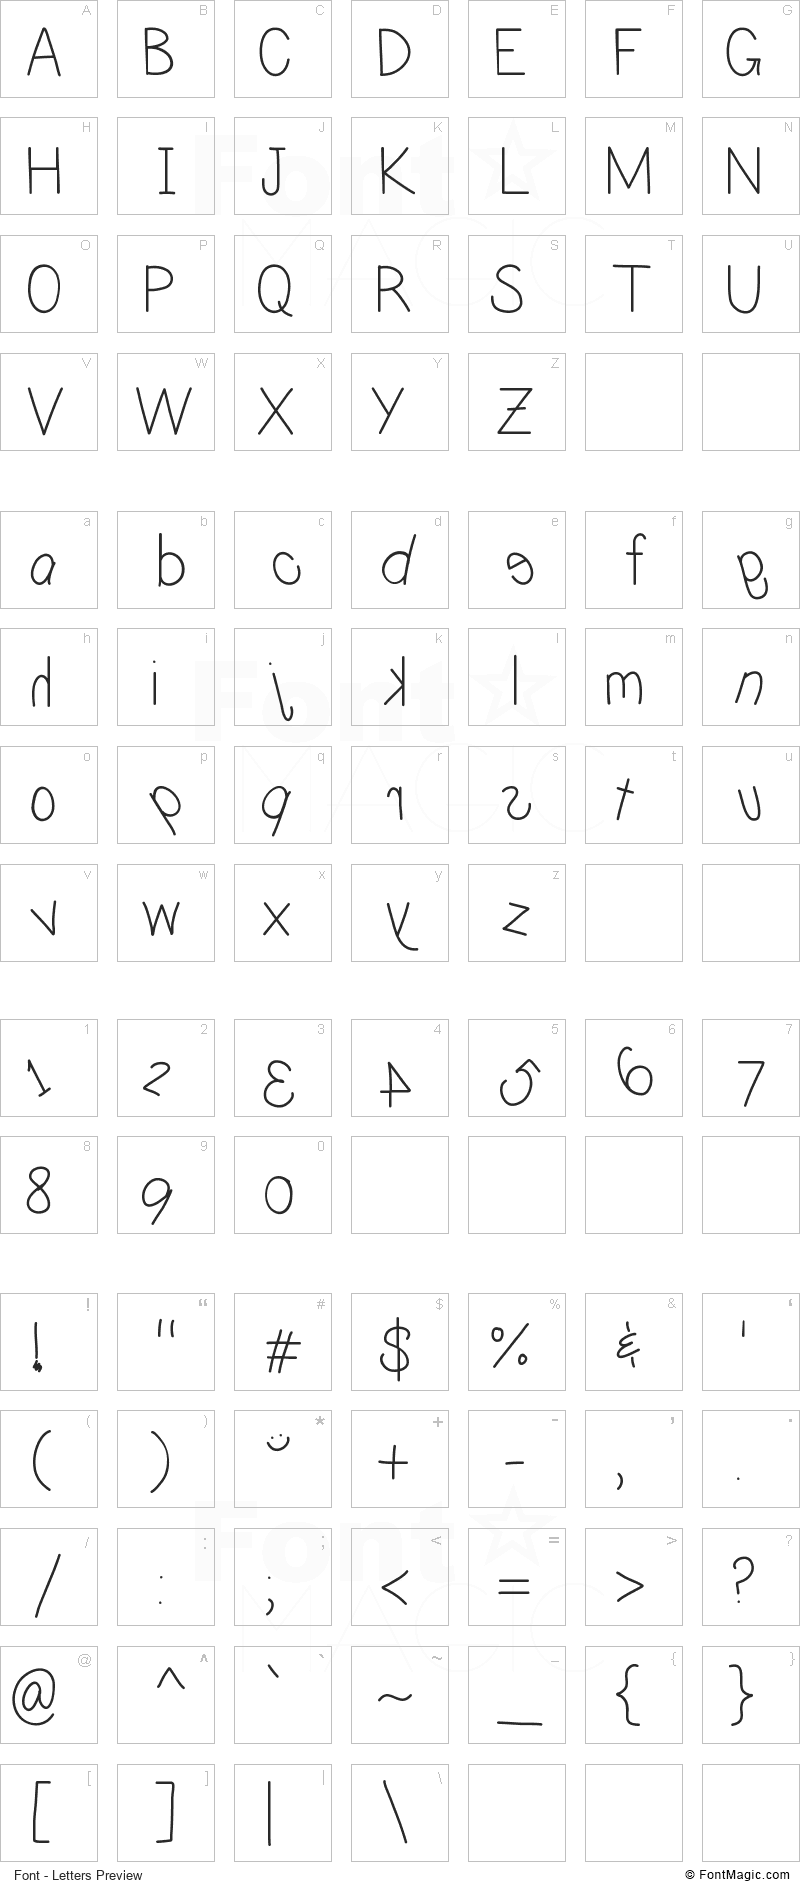 Caffeine Font - All Latters Preview Chart